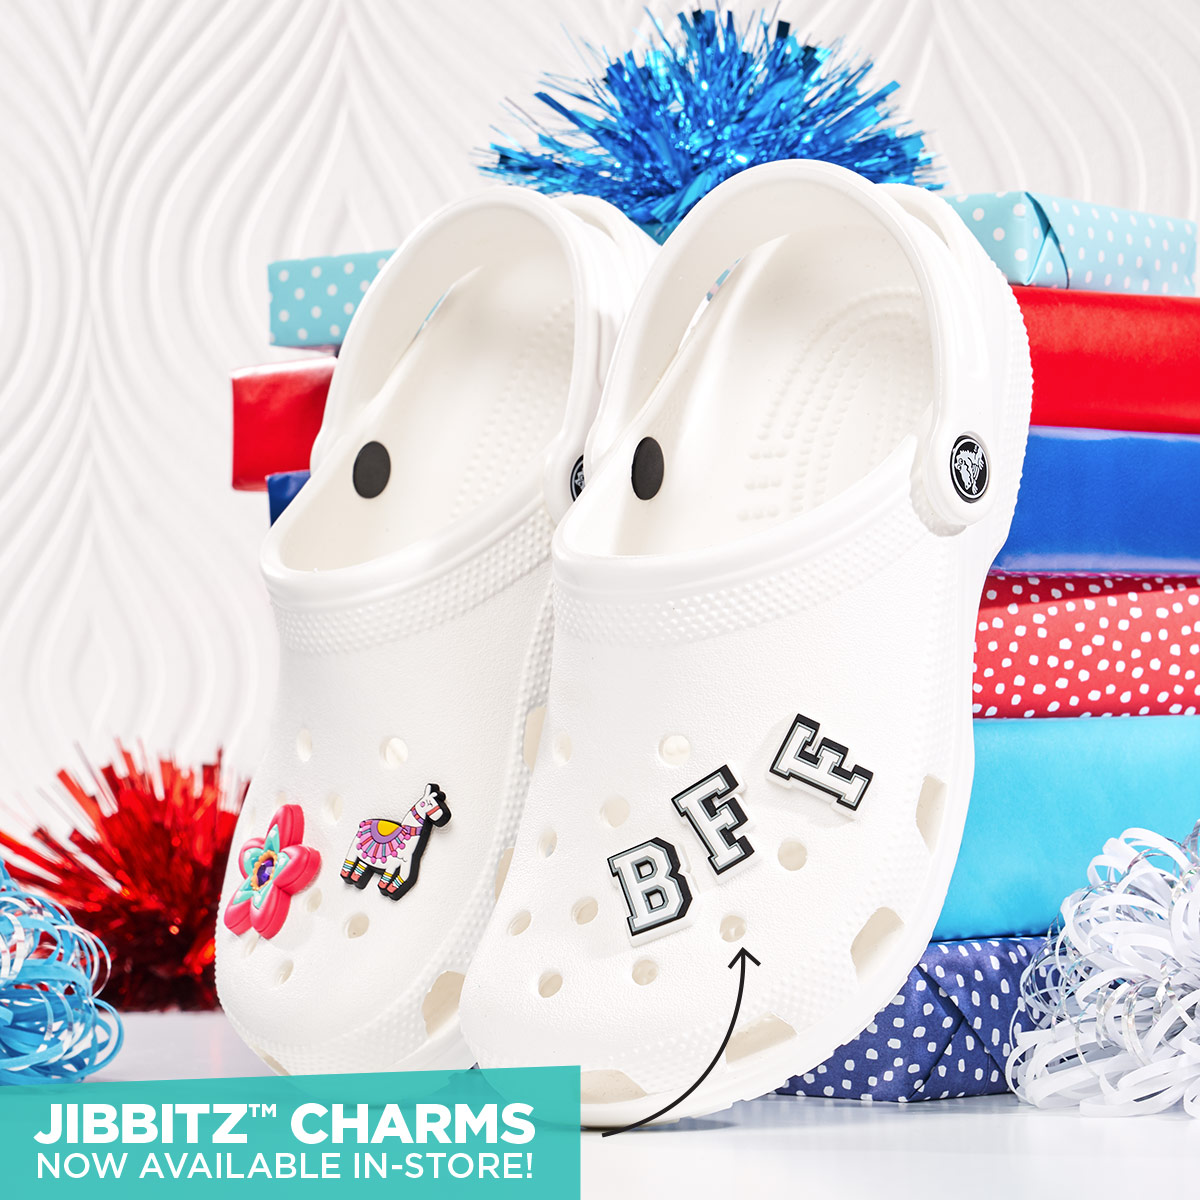 Pair of classic white crocs with jibbitz